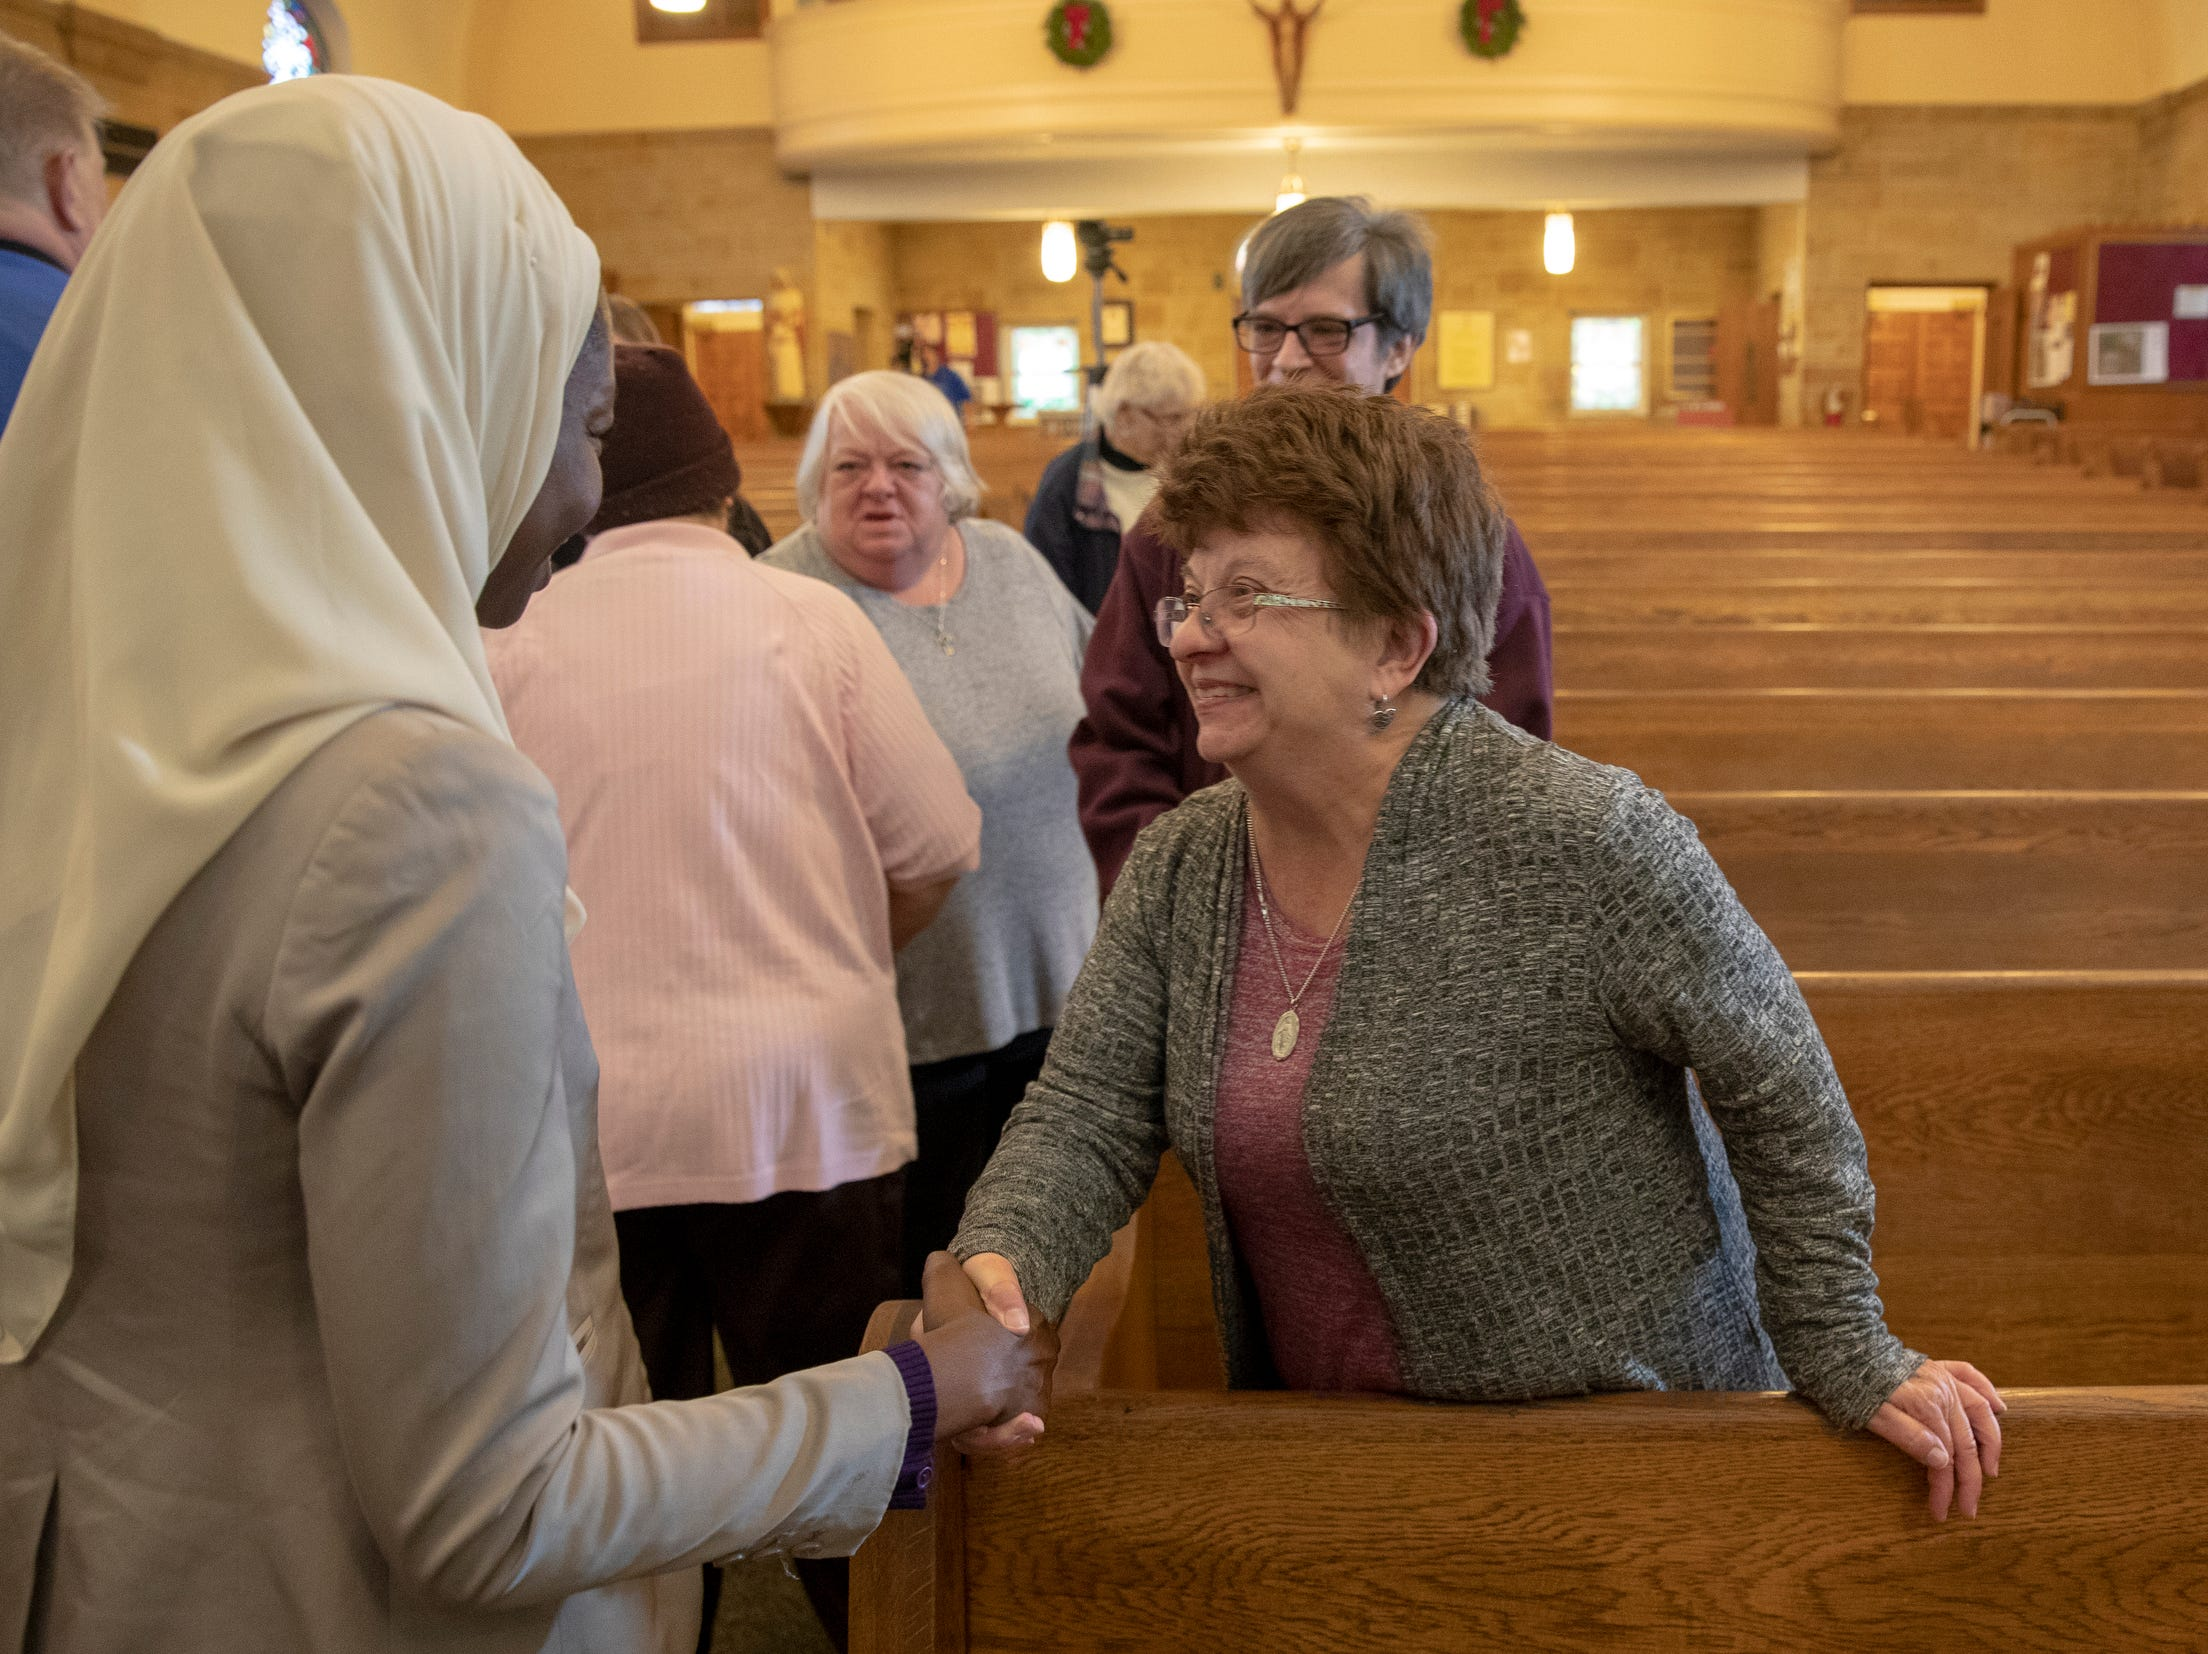 Halima Al-Khattab (left), embraces Mary Kendall, during a Christian-Muslim prayer service at Saint Philip Neri Catholic Church, Indianapolis, Sunday, Dec. 16, 2018. The service is the second annual, and joins people from this church and Indianapolis' Masjid Al-Fajr.